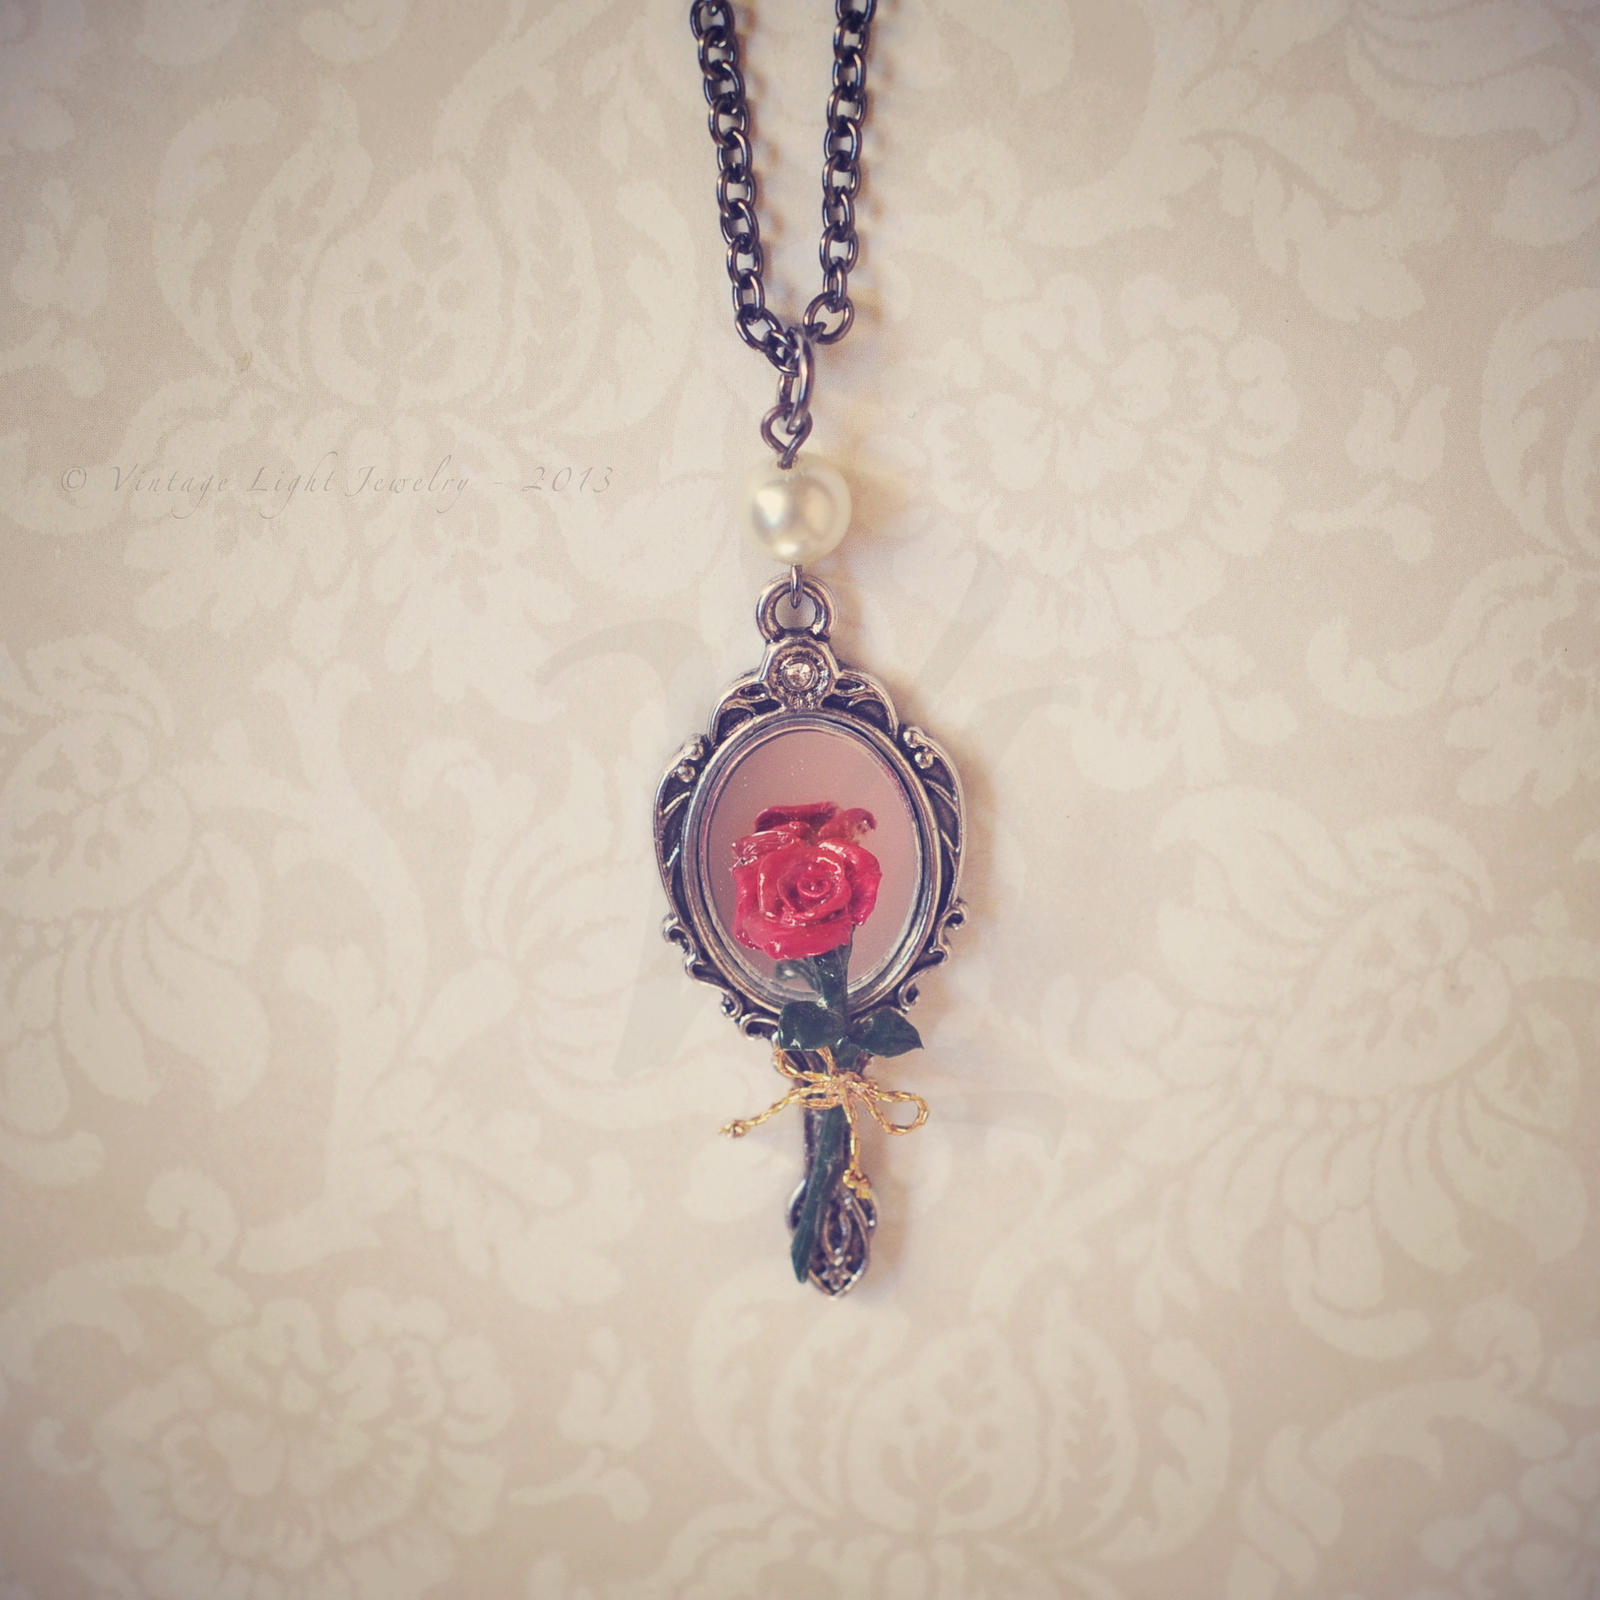 Beauty and the Beast - Rose and Mirror Necklace by VintageLightJewelry